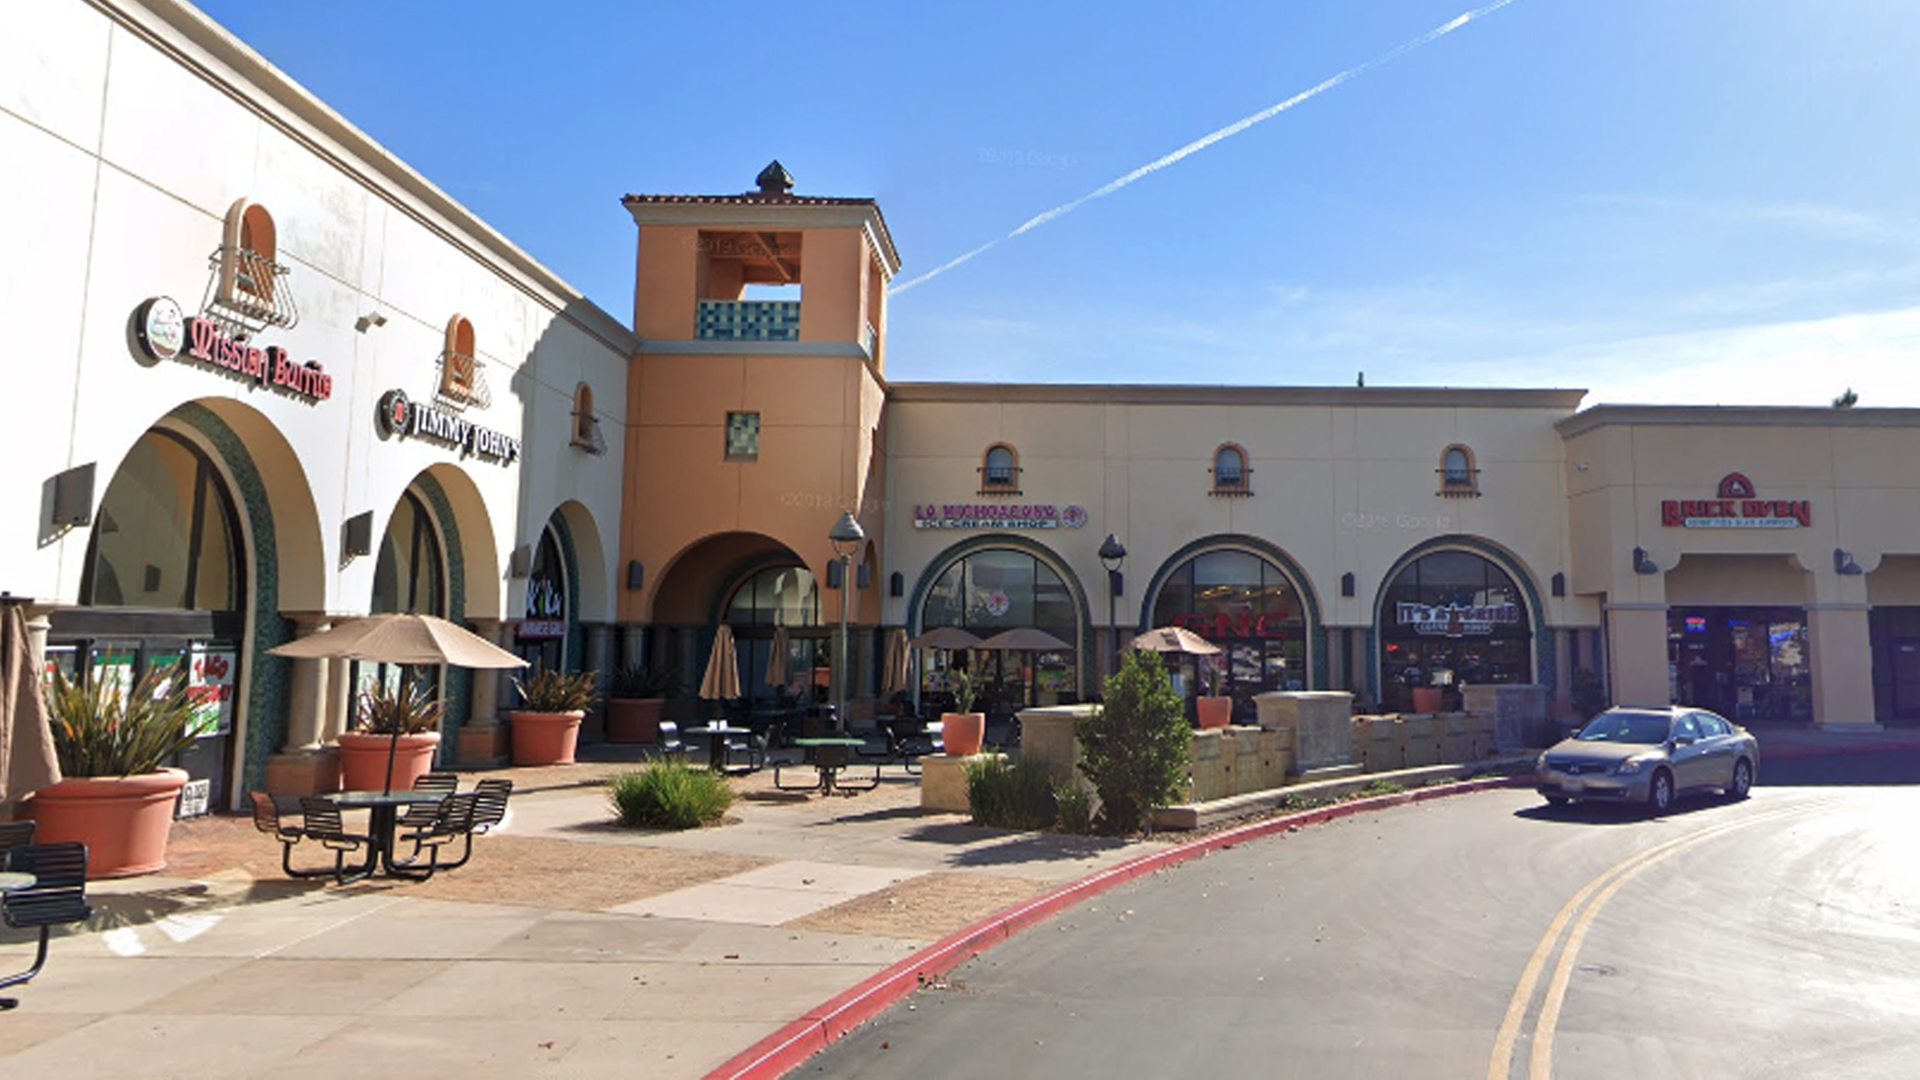 Mission Burrito and Brick Oven Pizza at the Moorpark Marketplace are seen in a Google Maps Street View image.